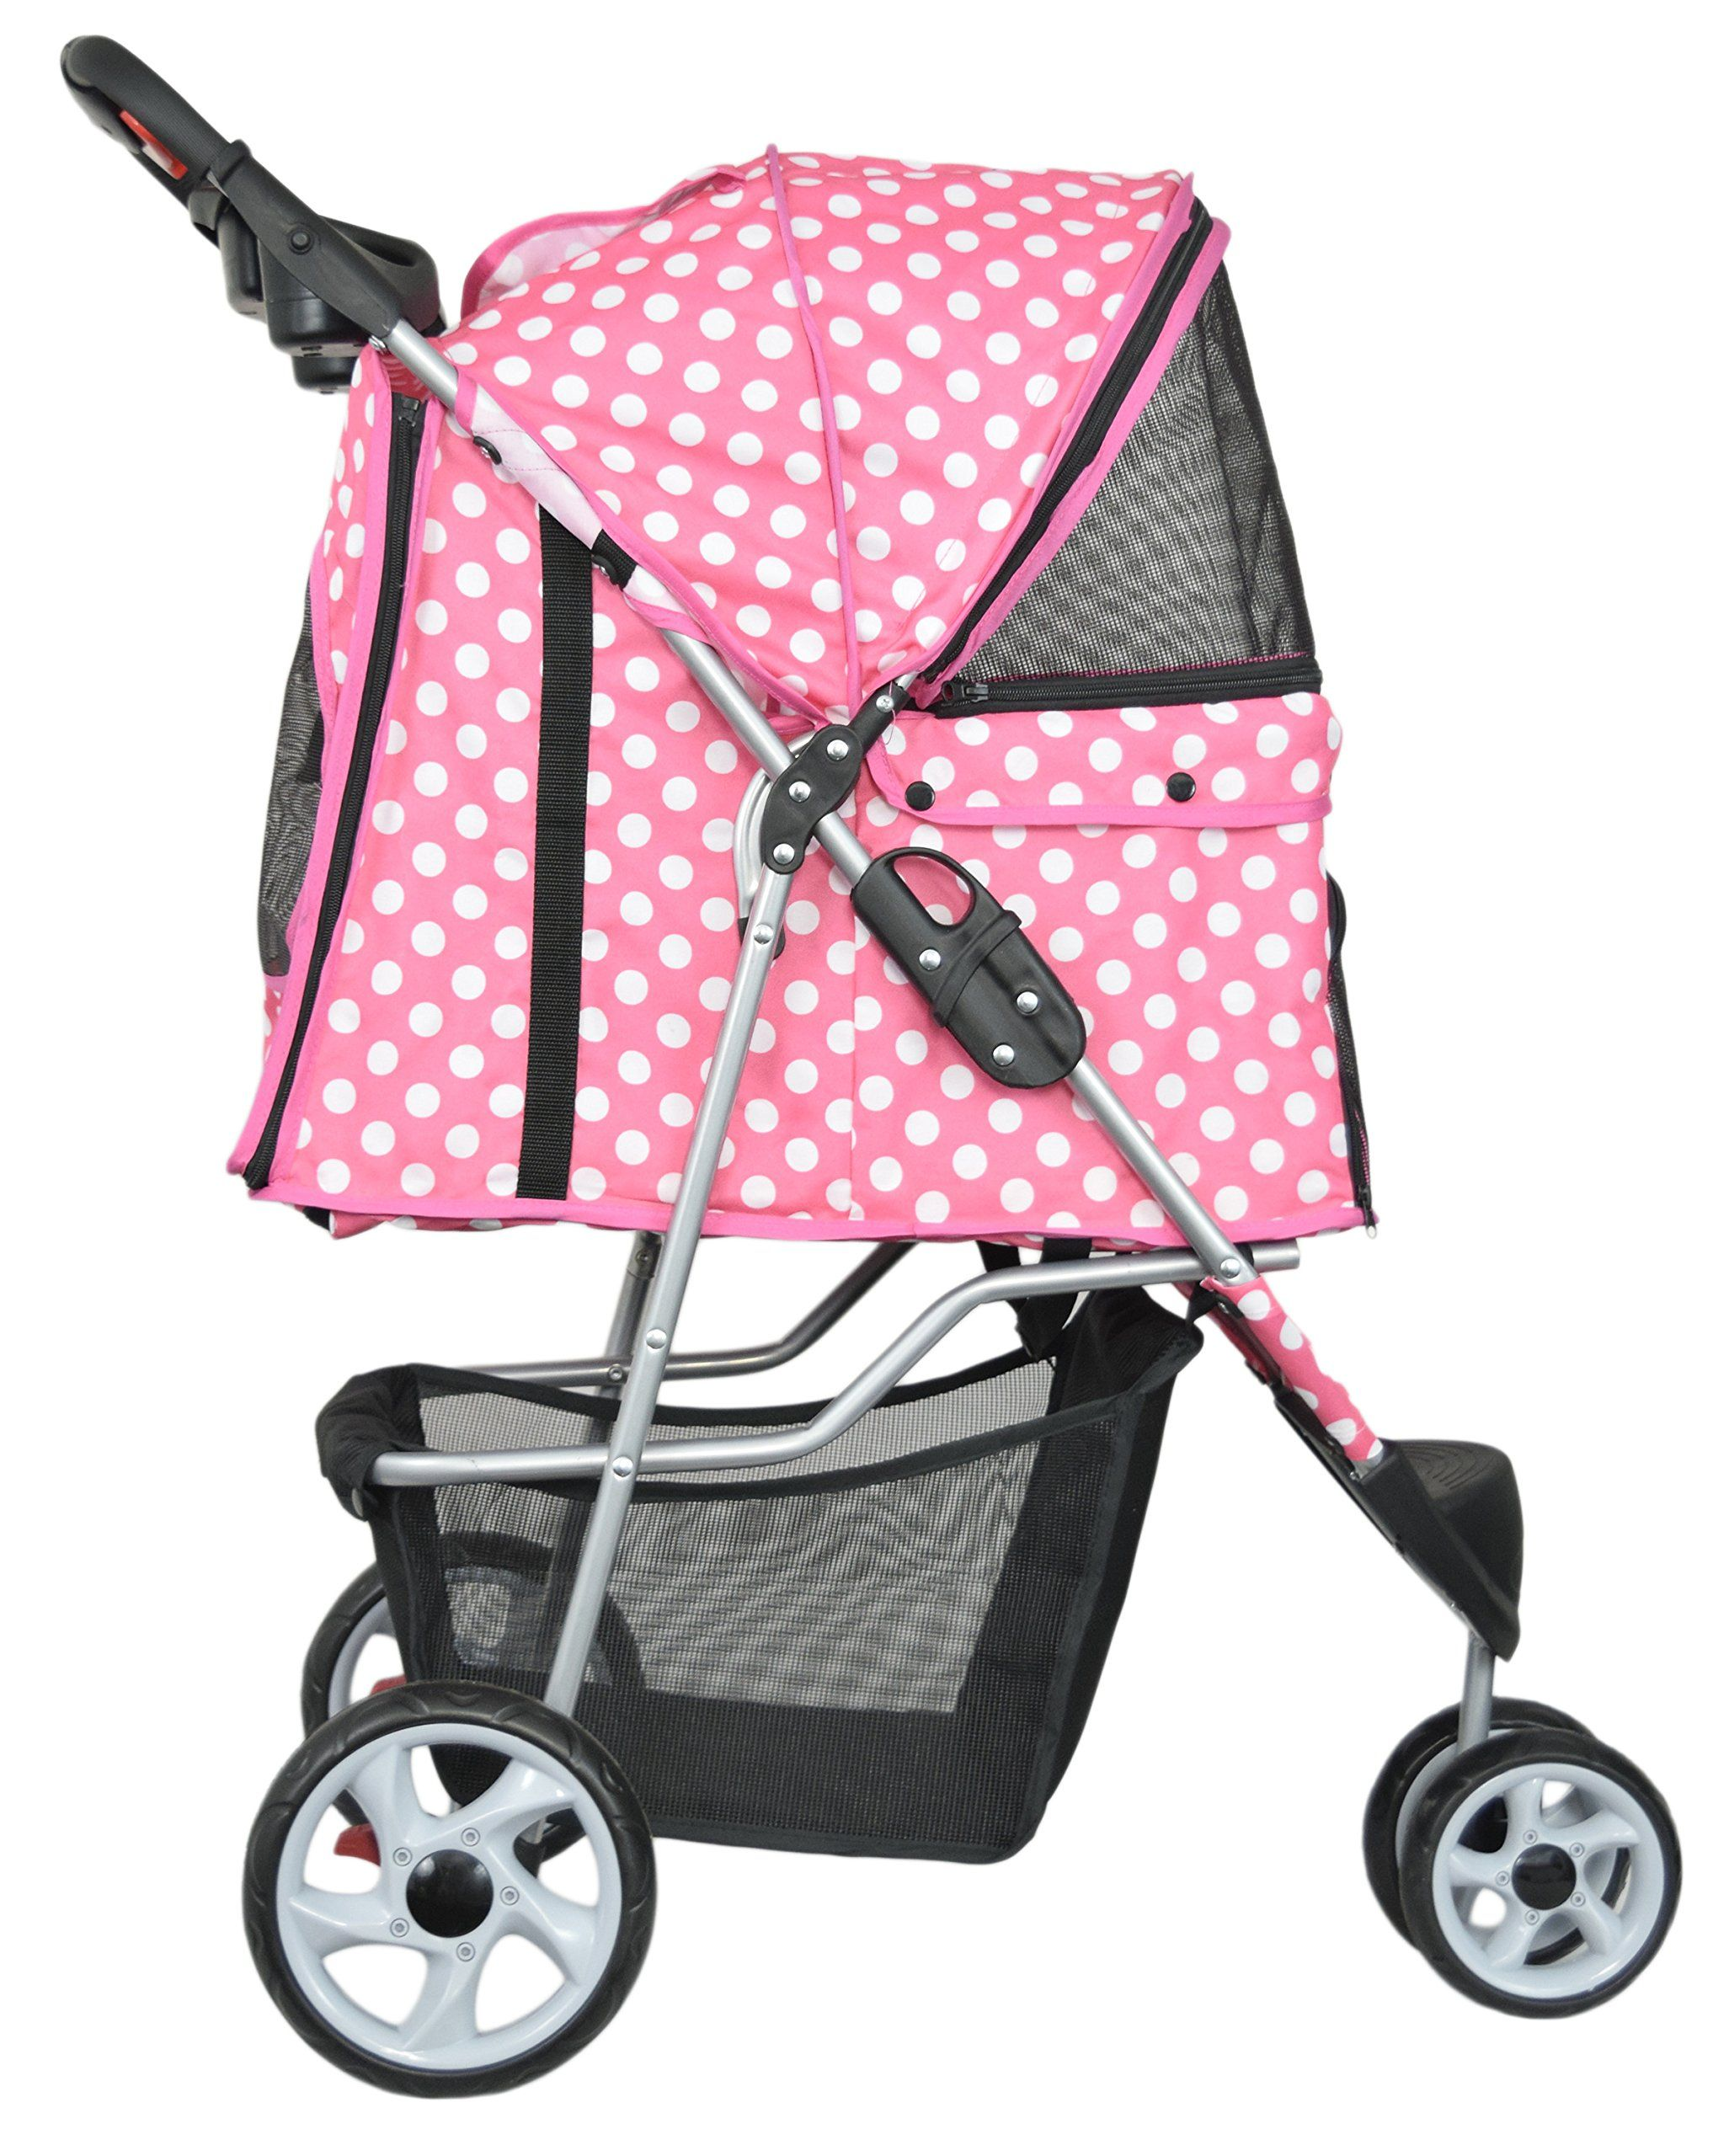 VIVO Three Wheel Pet Stroller for Cat Dog and More